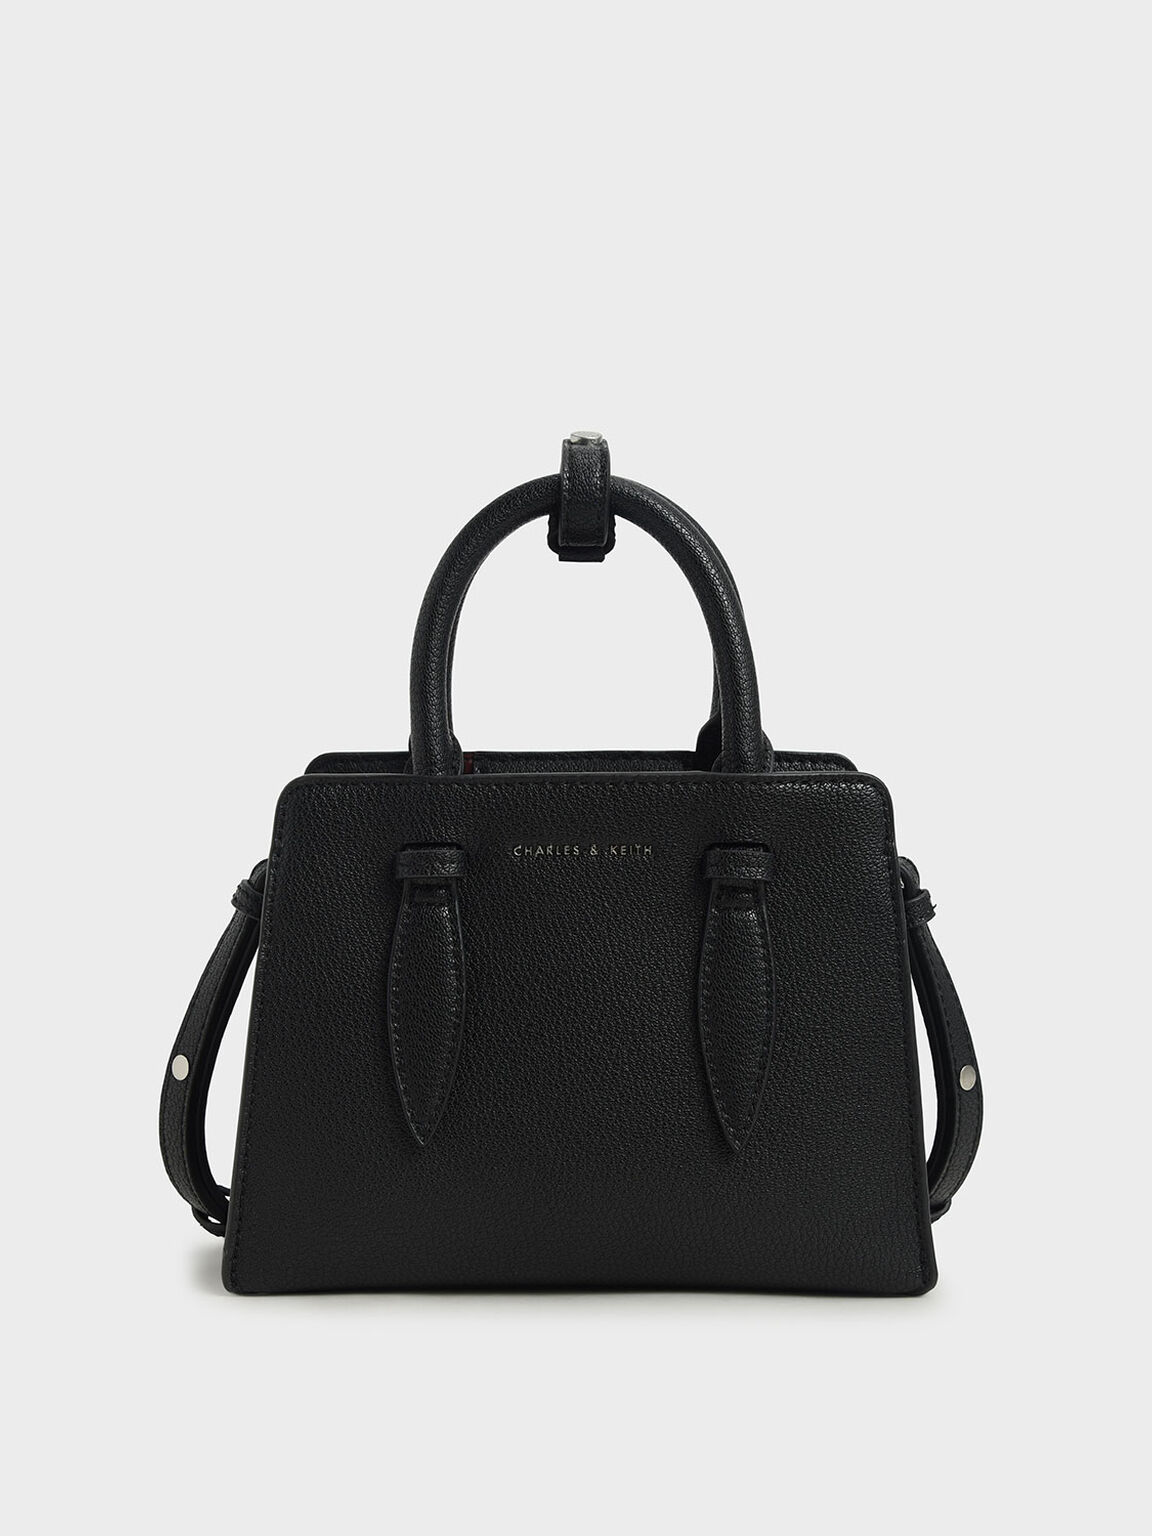 Double Top Handle Structured Bag, Black, hi-res